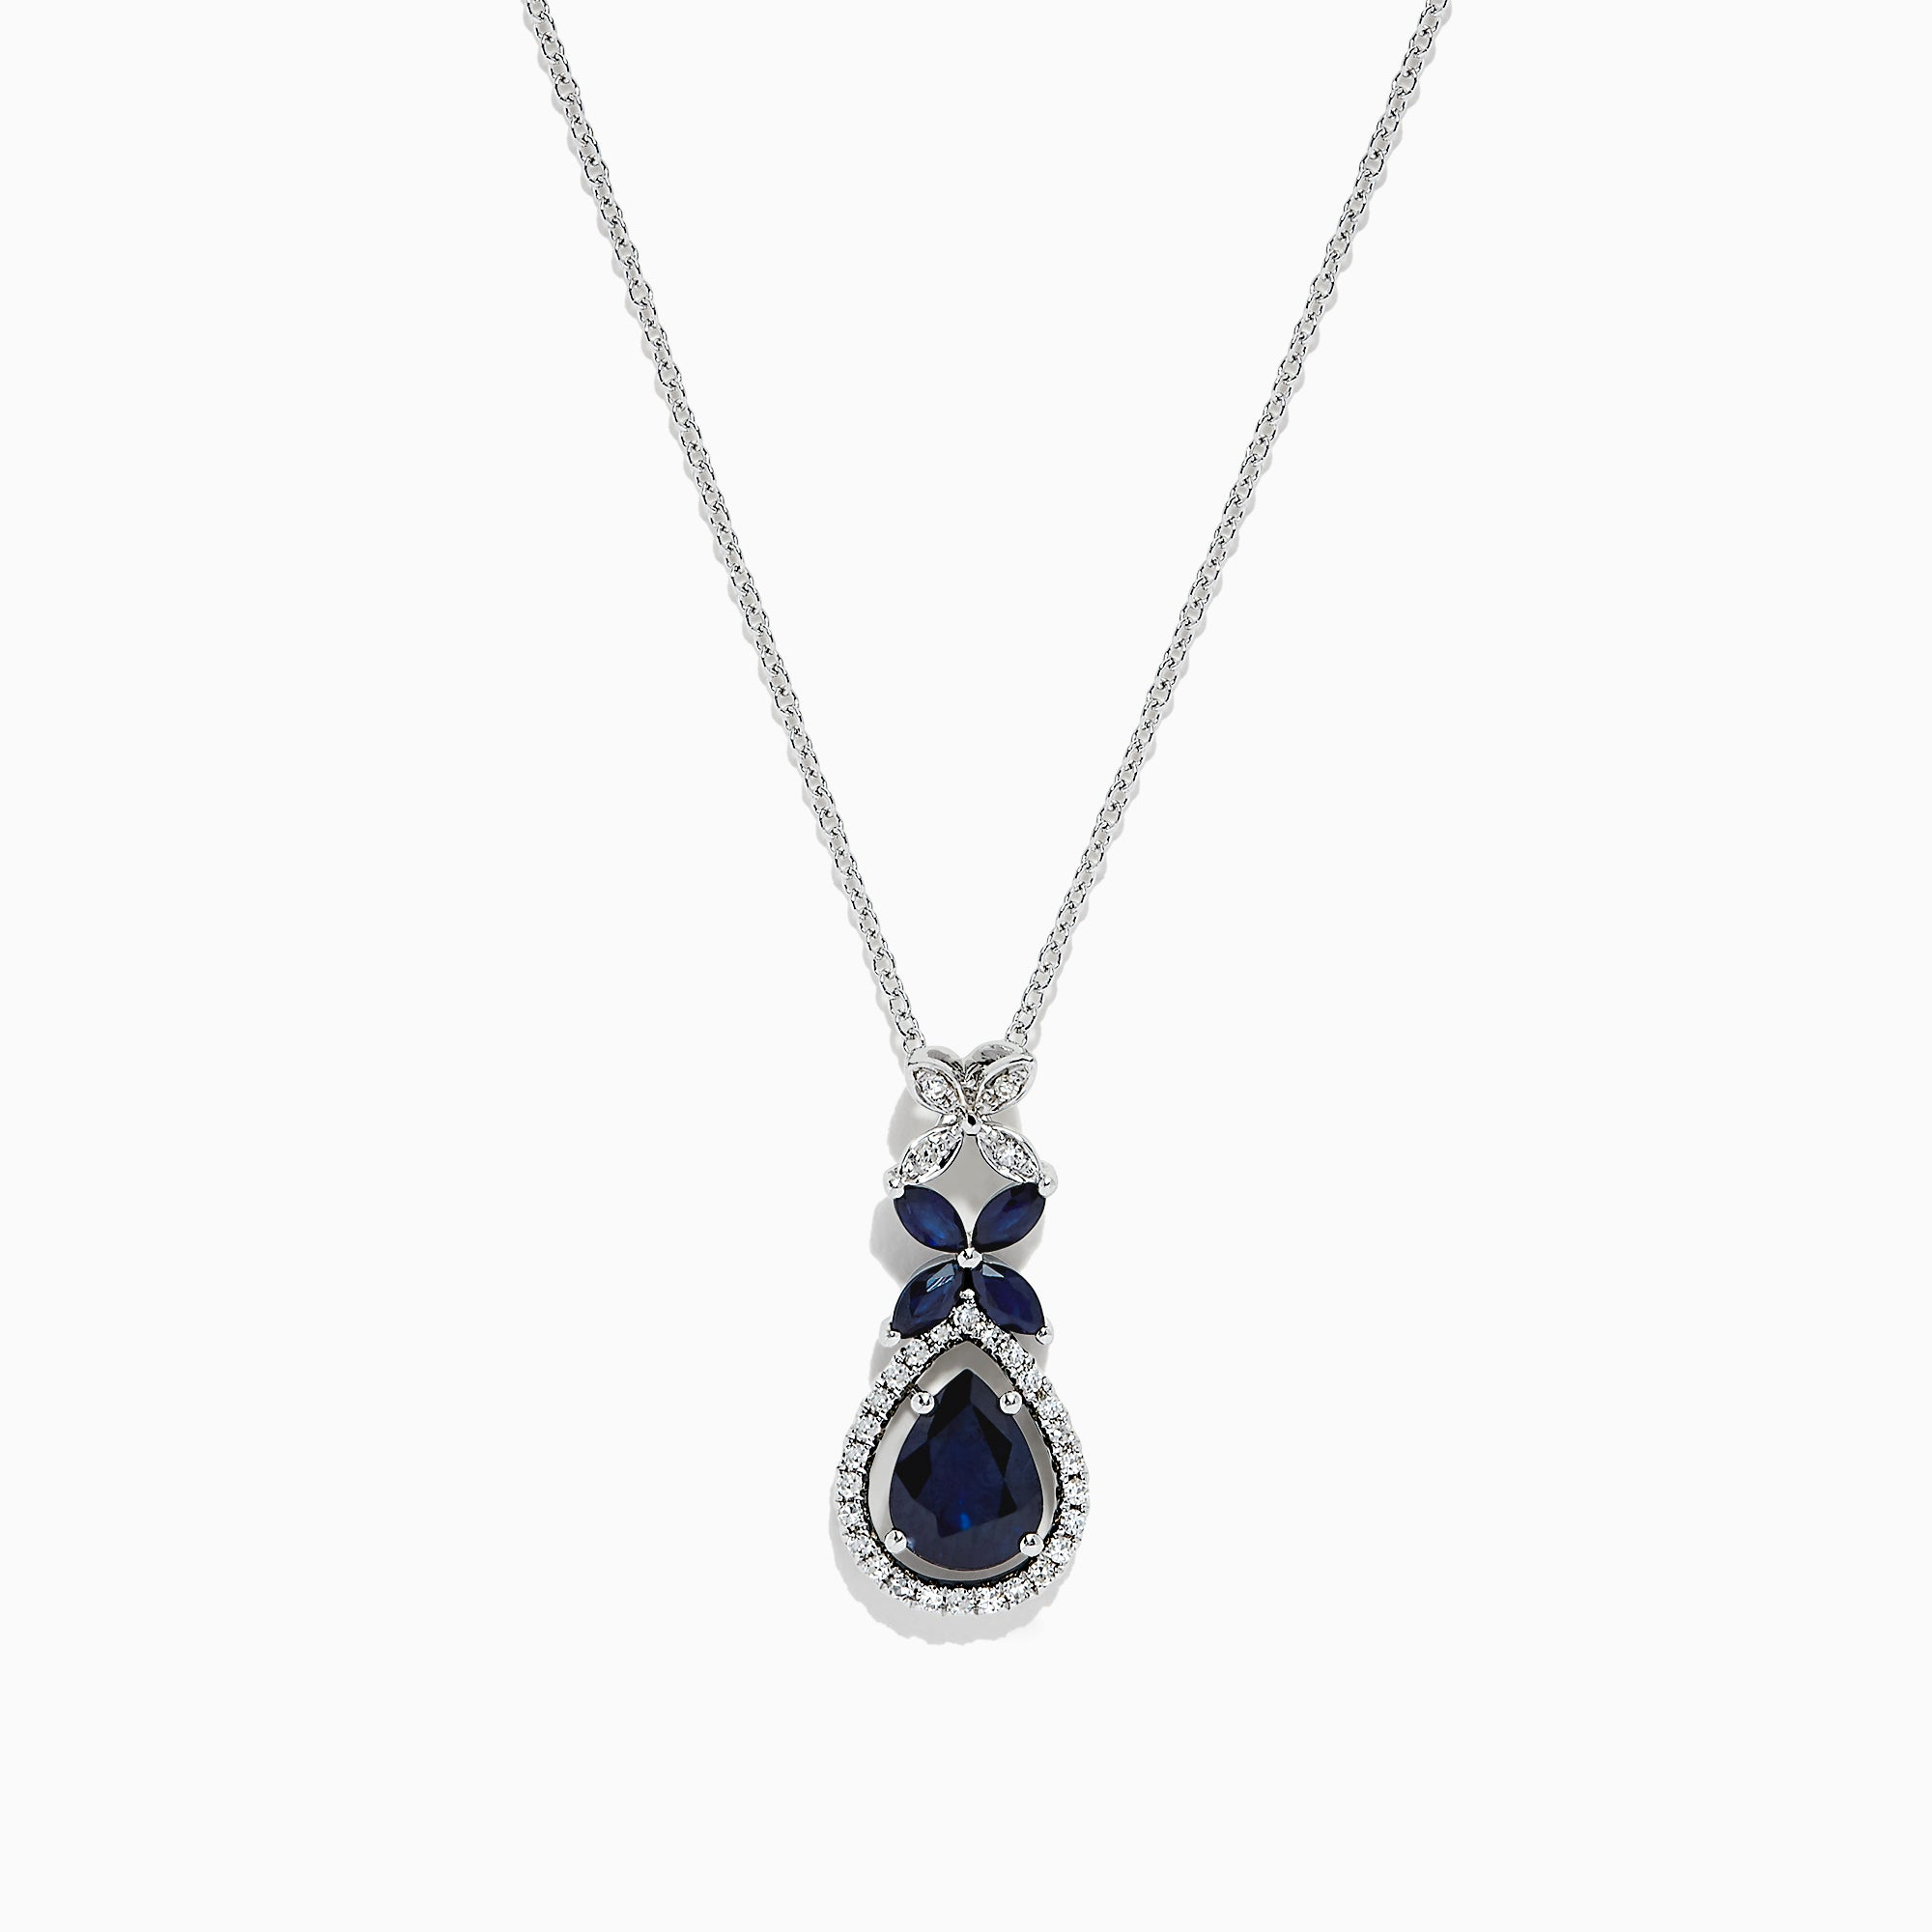 Effy Royale Bleu 14K White Gold Sapphire and Diamond Pendant, 1.65 TCW